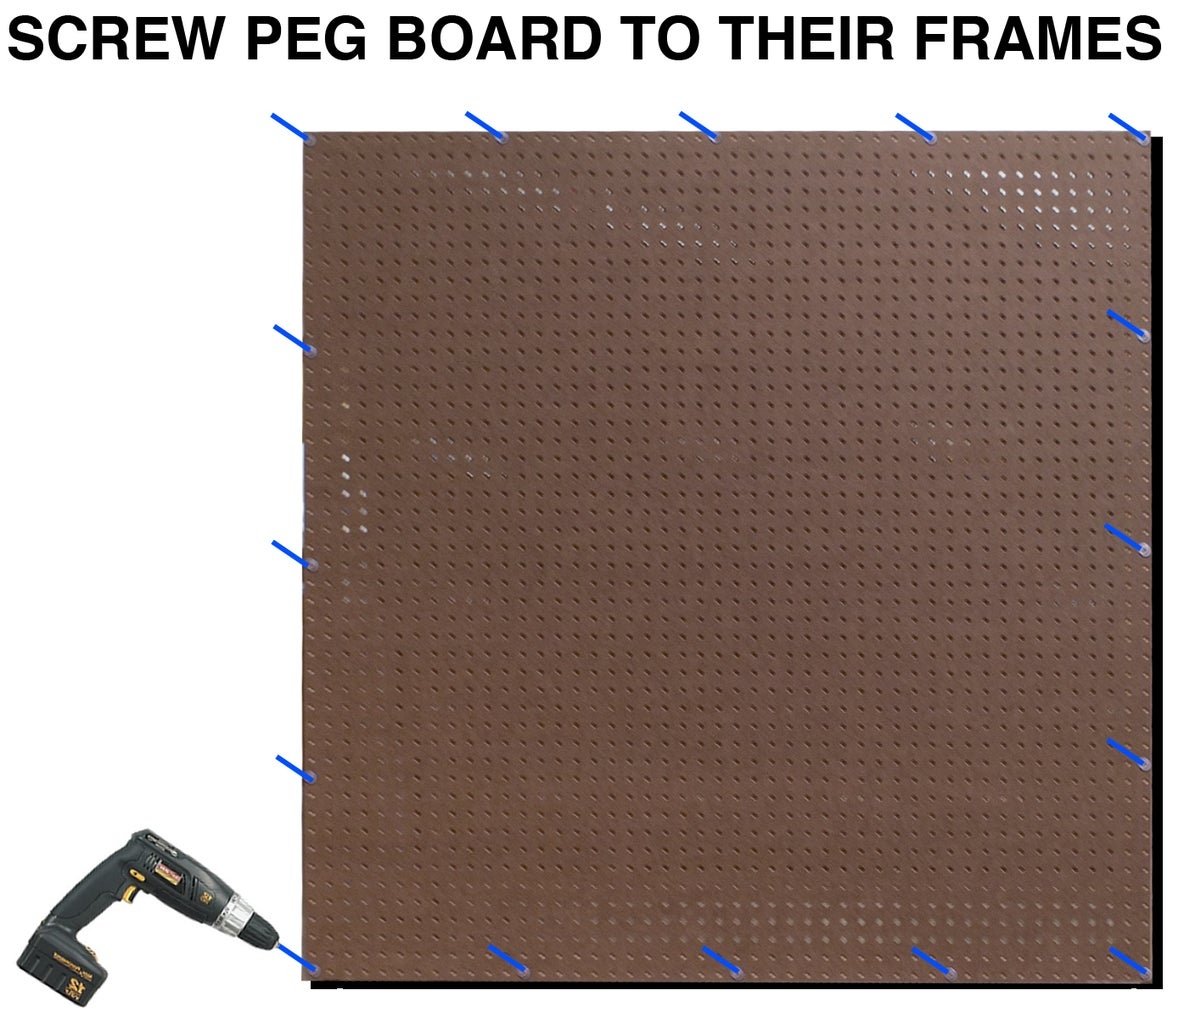 Screw the Peg Board to Their Wooden Frames